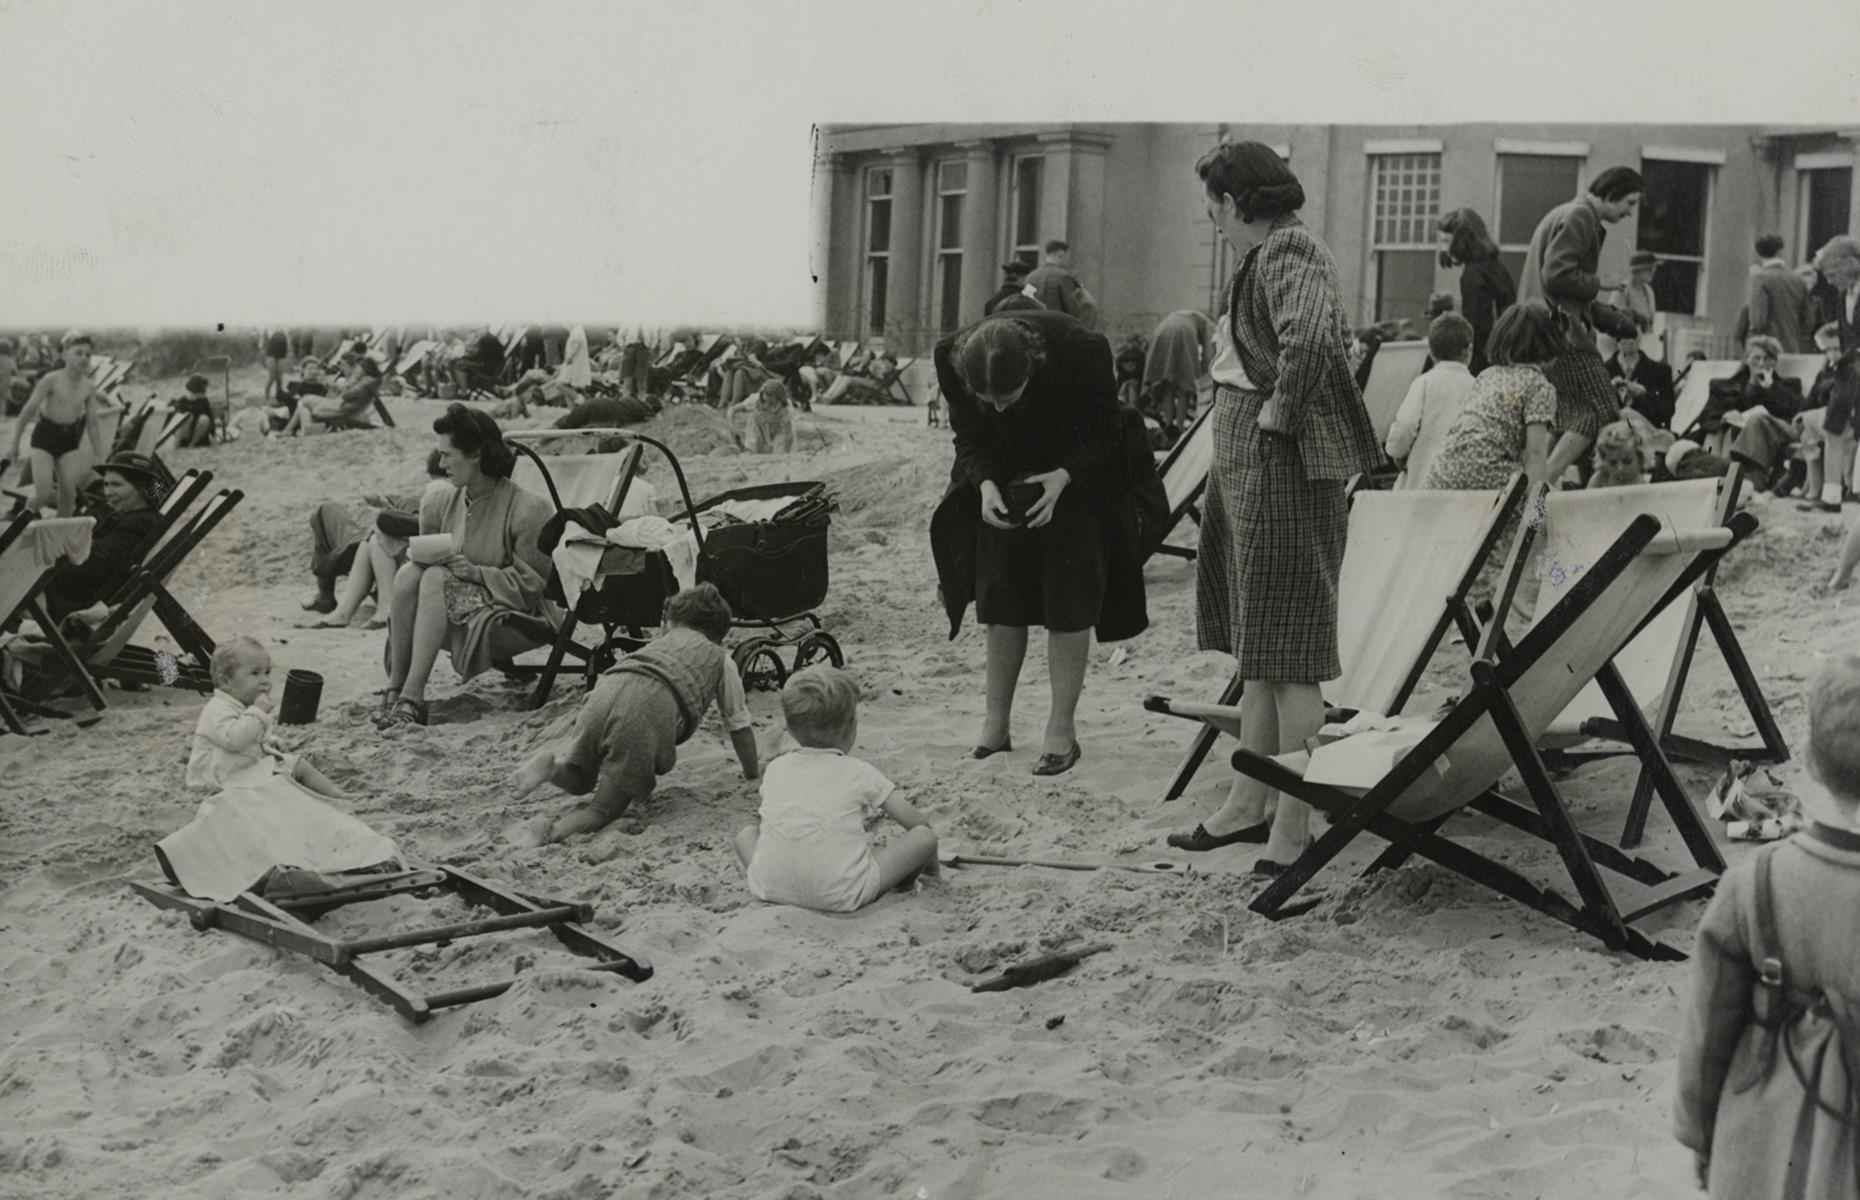 Slide 6 of 38: Across the pond, vacations unfolded in much the same way as they did in the States during the 1940s. This snap shows bathers and beach-baskers on South Sands in Devon at the tail end of the war, not long after the spot had been reopened.